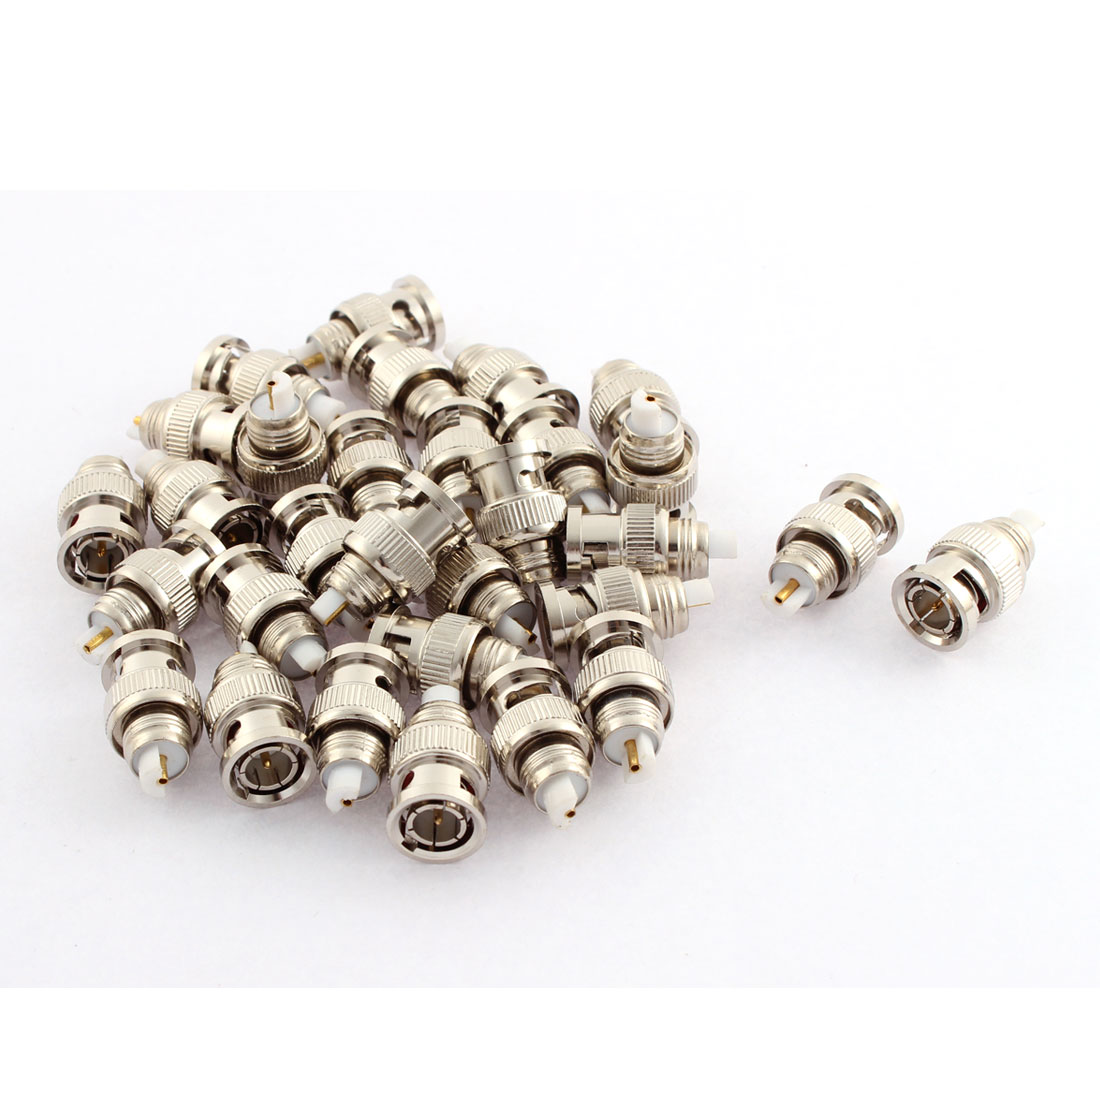 30Pcs BNC Male Connector Adapter for CCTV Camera